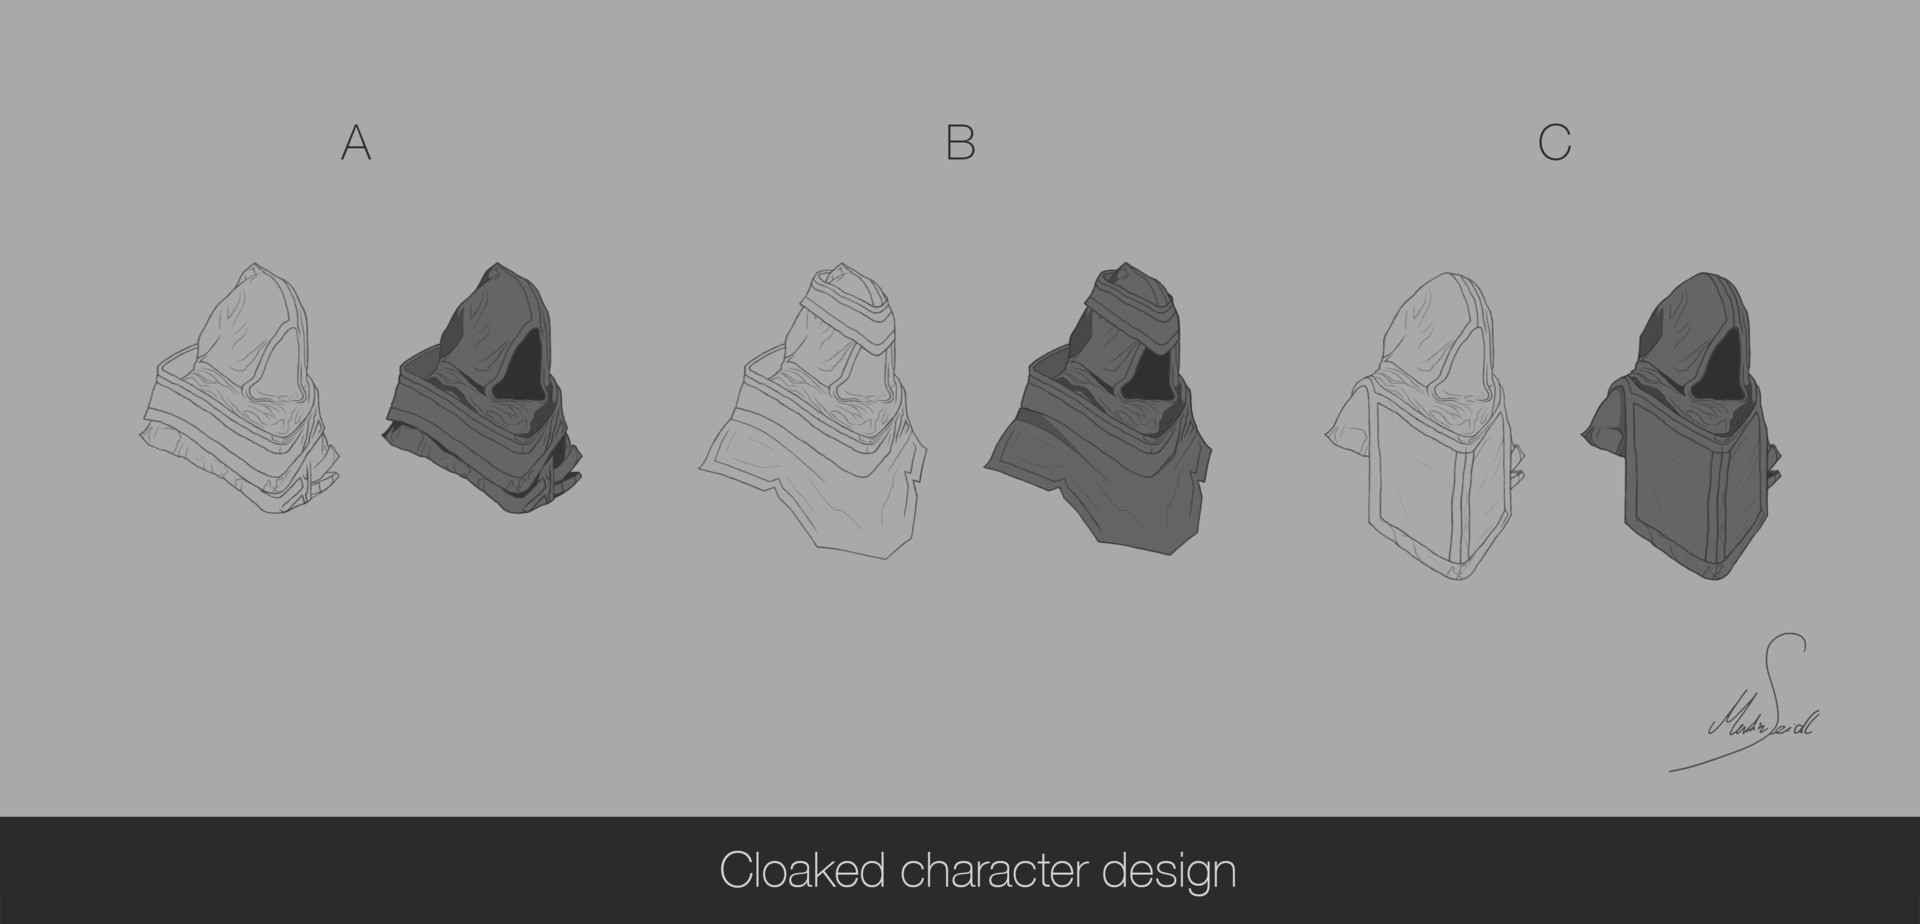 Martin seidl cloaked character design